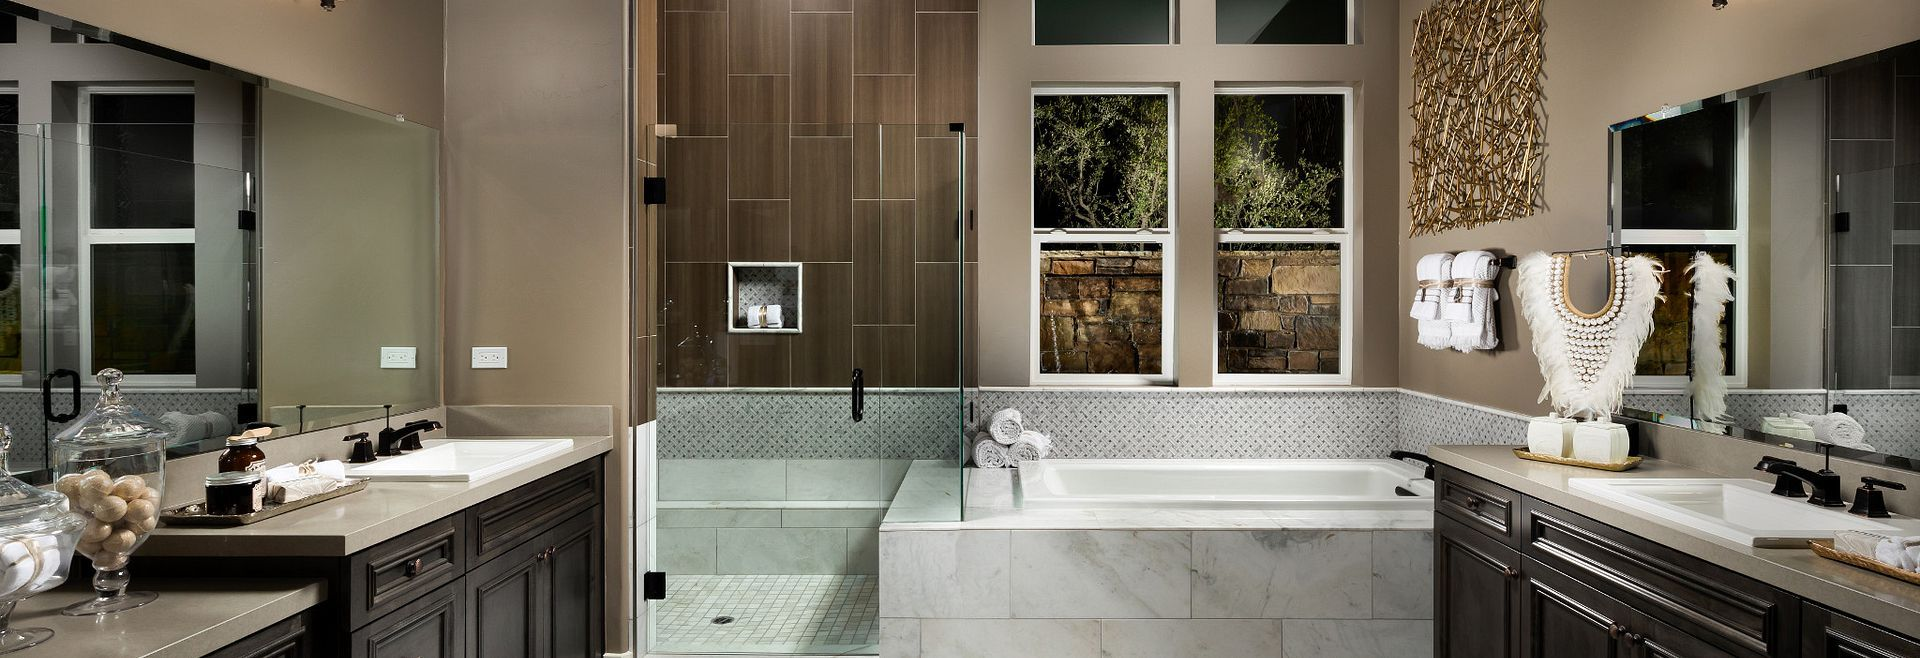 Bathroom featured in the Dolcetto By Shea Homes - Trilogy in San Luis Obispo, CA